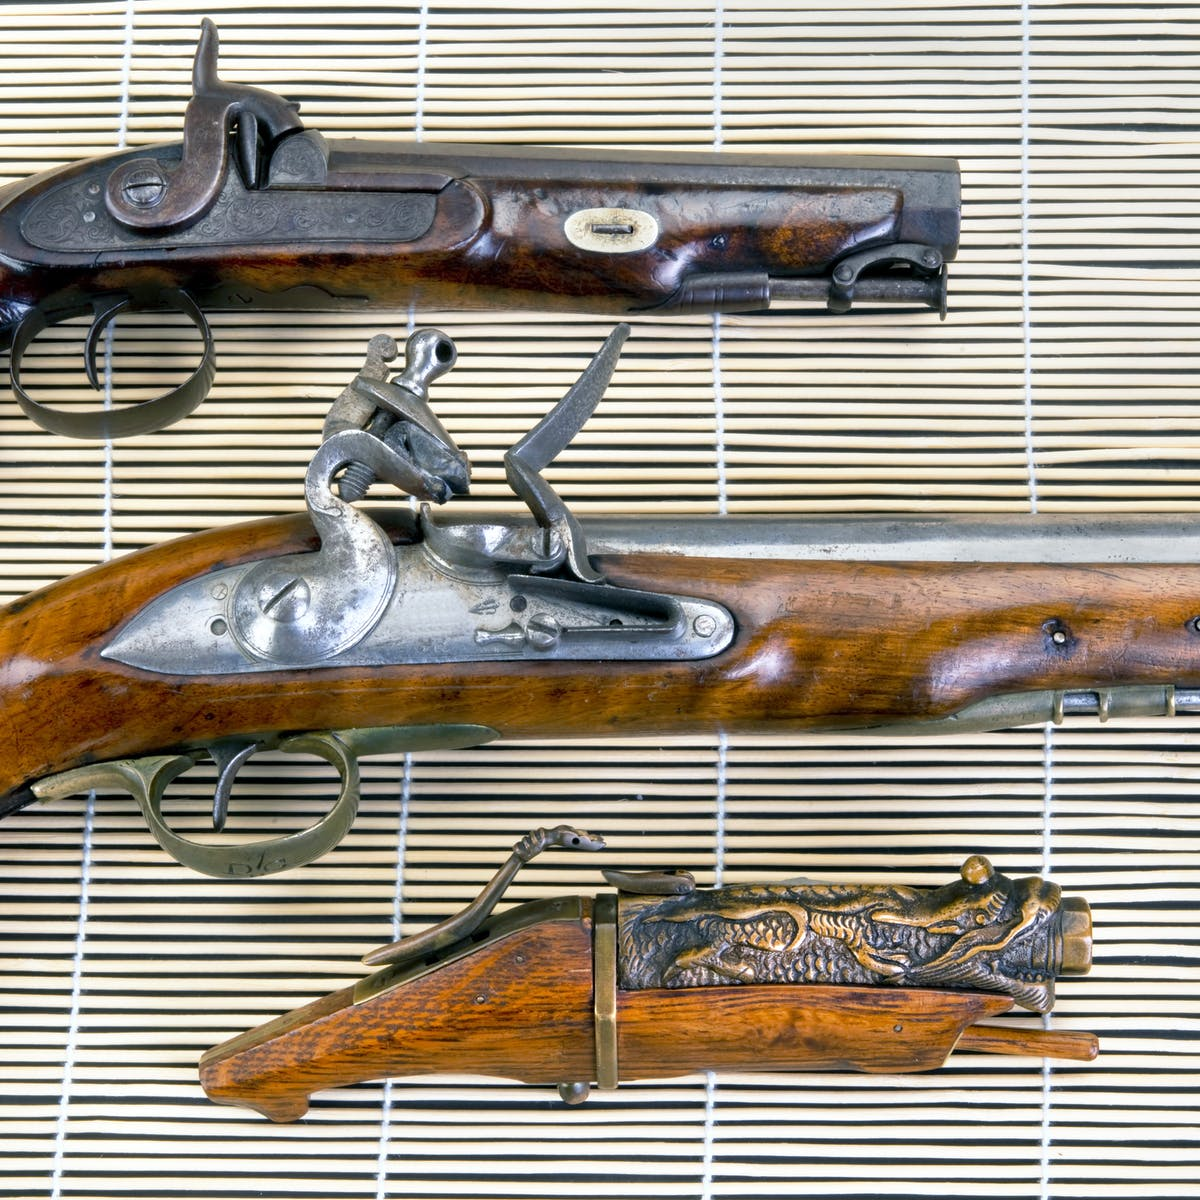 Criminals are using antique weapons due to a loophole in UK law